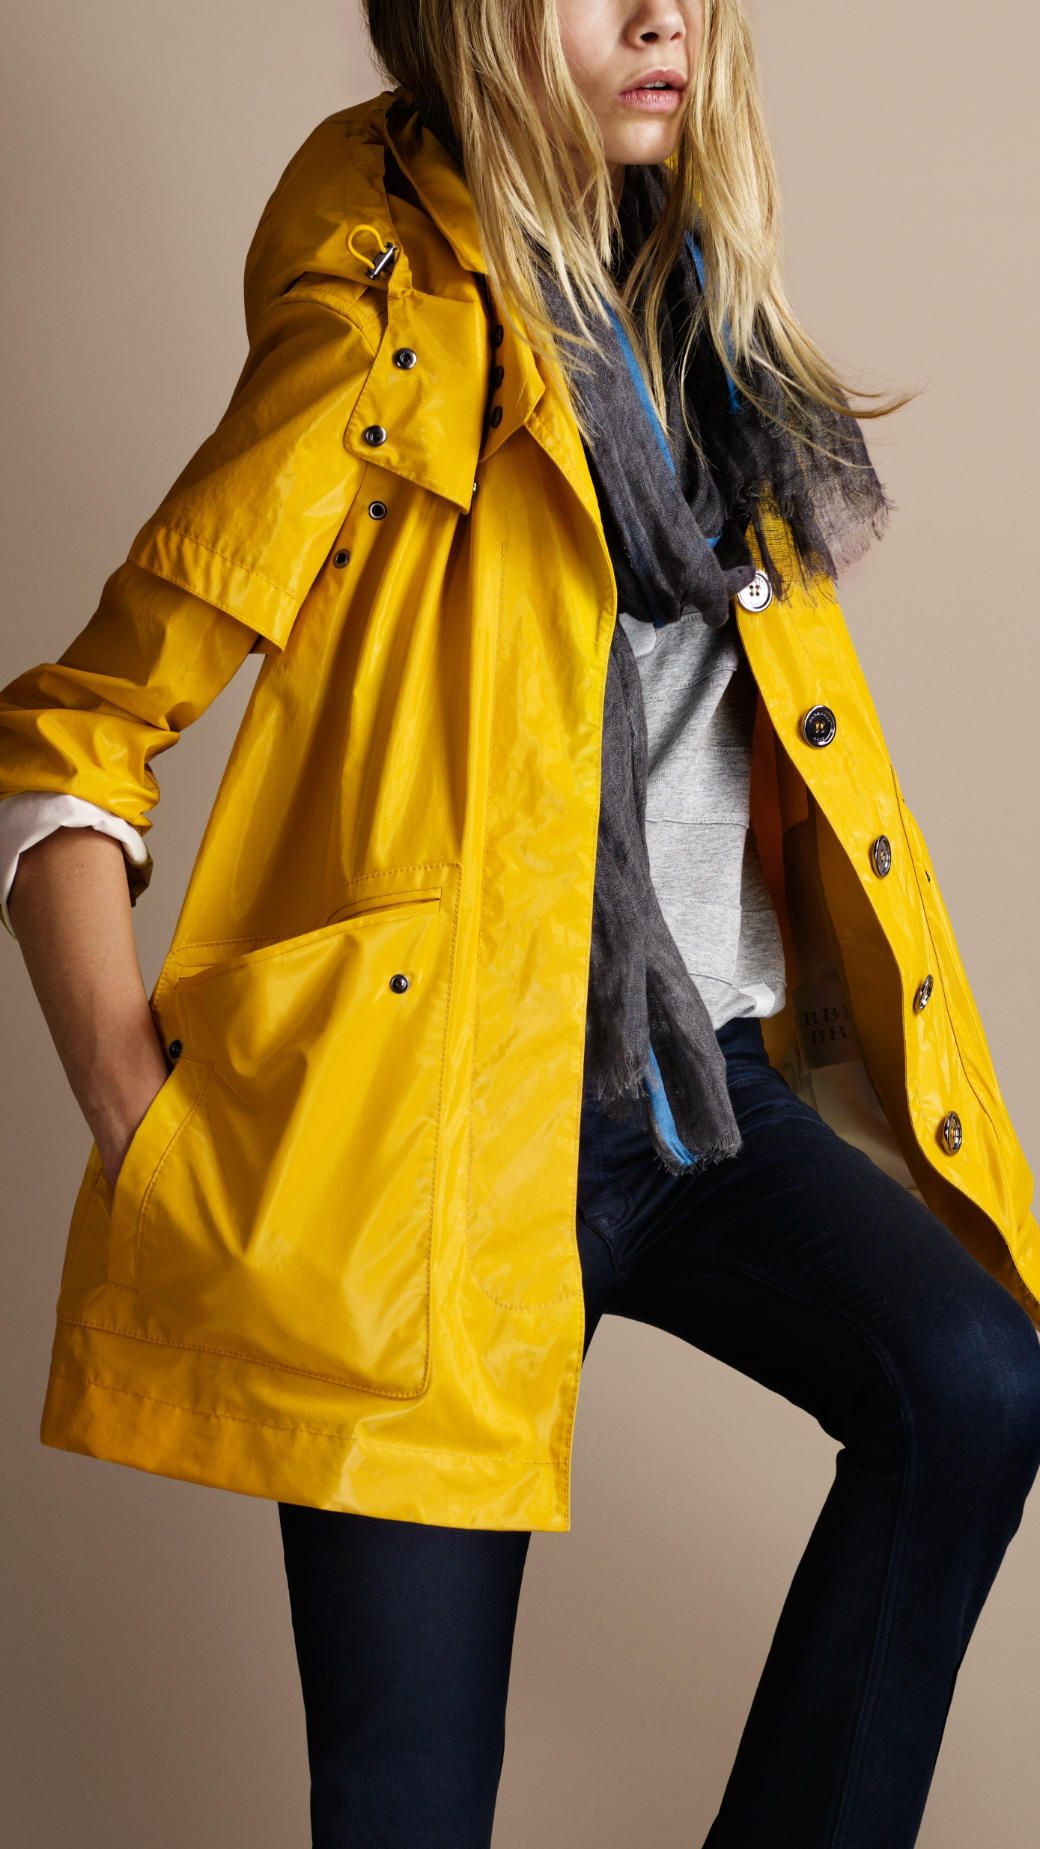 4db6f49ba bright yellow raincoat because every lady needs a cute raincoat {even if  you only wear it when it's gloomy - at least you look prepared and on trend}